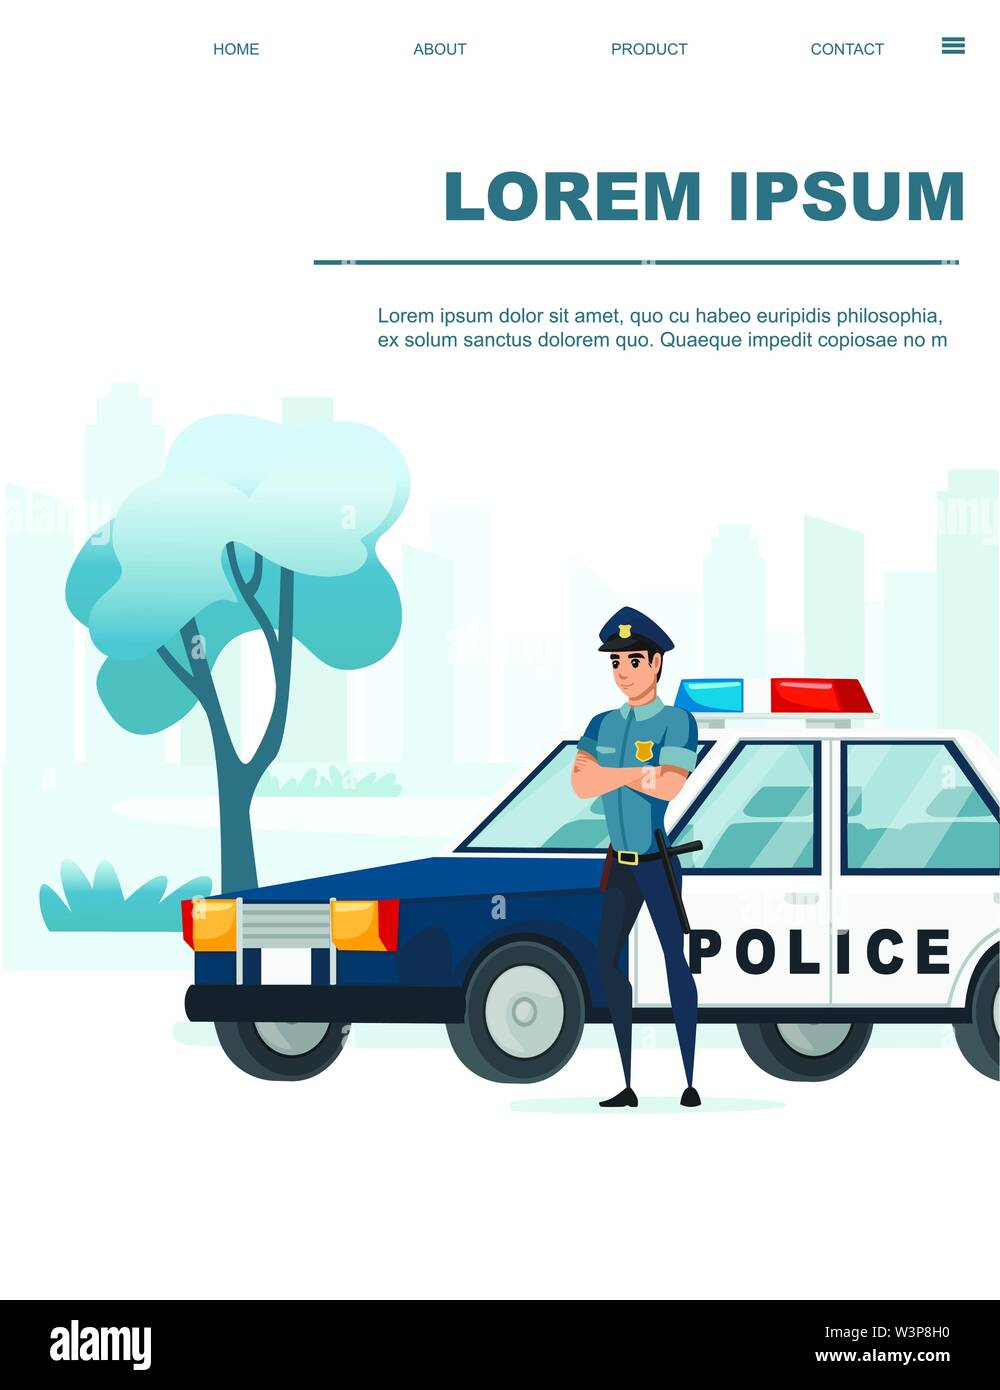 Police Car Website >> Cartoon Design Police Car And Police Officer Stay On